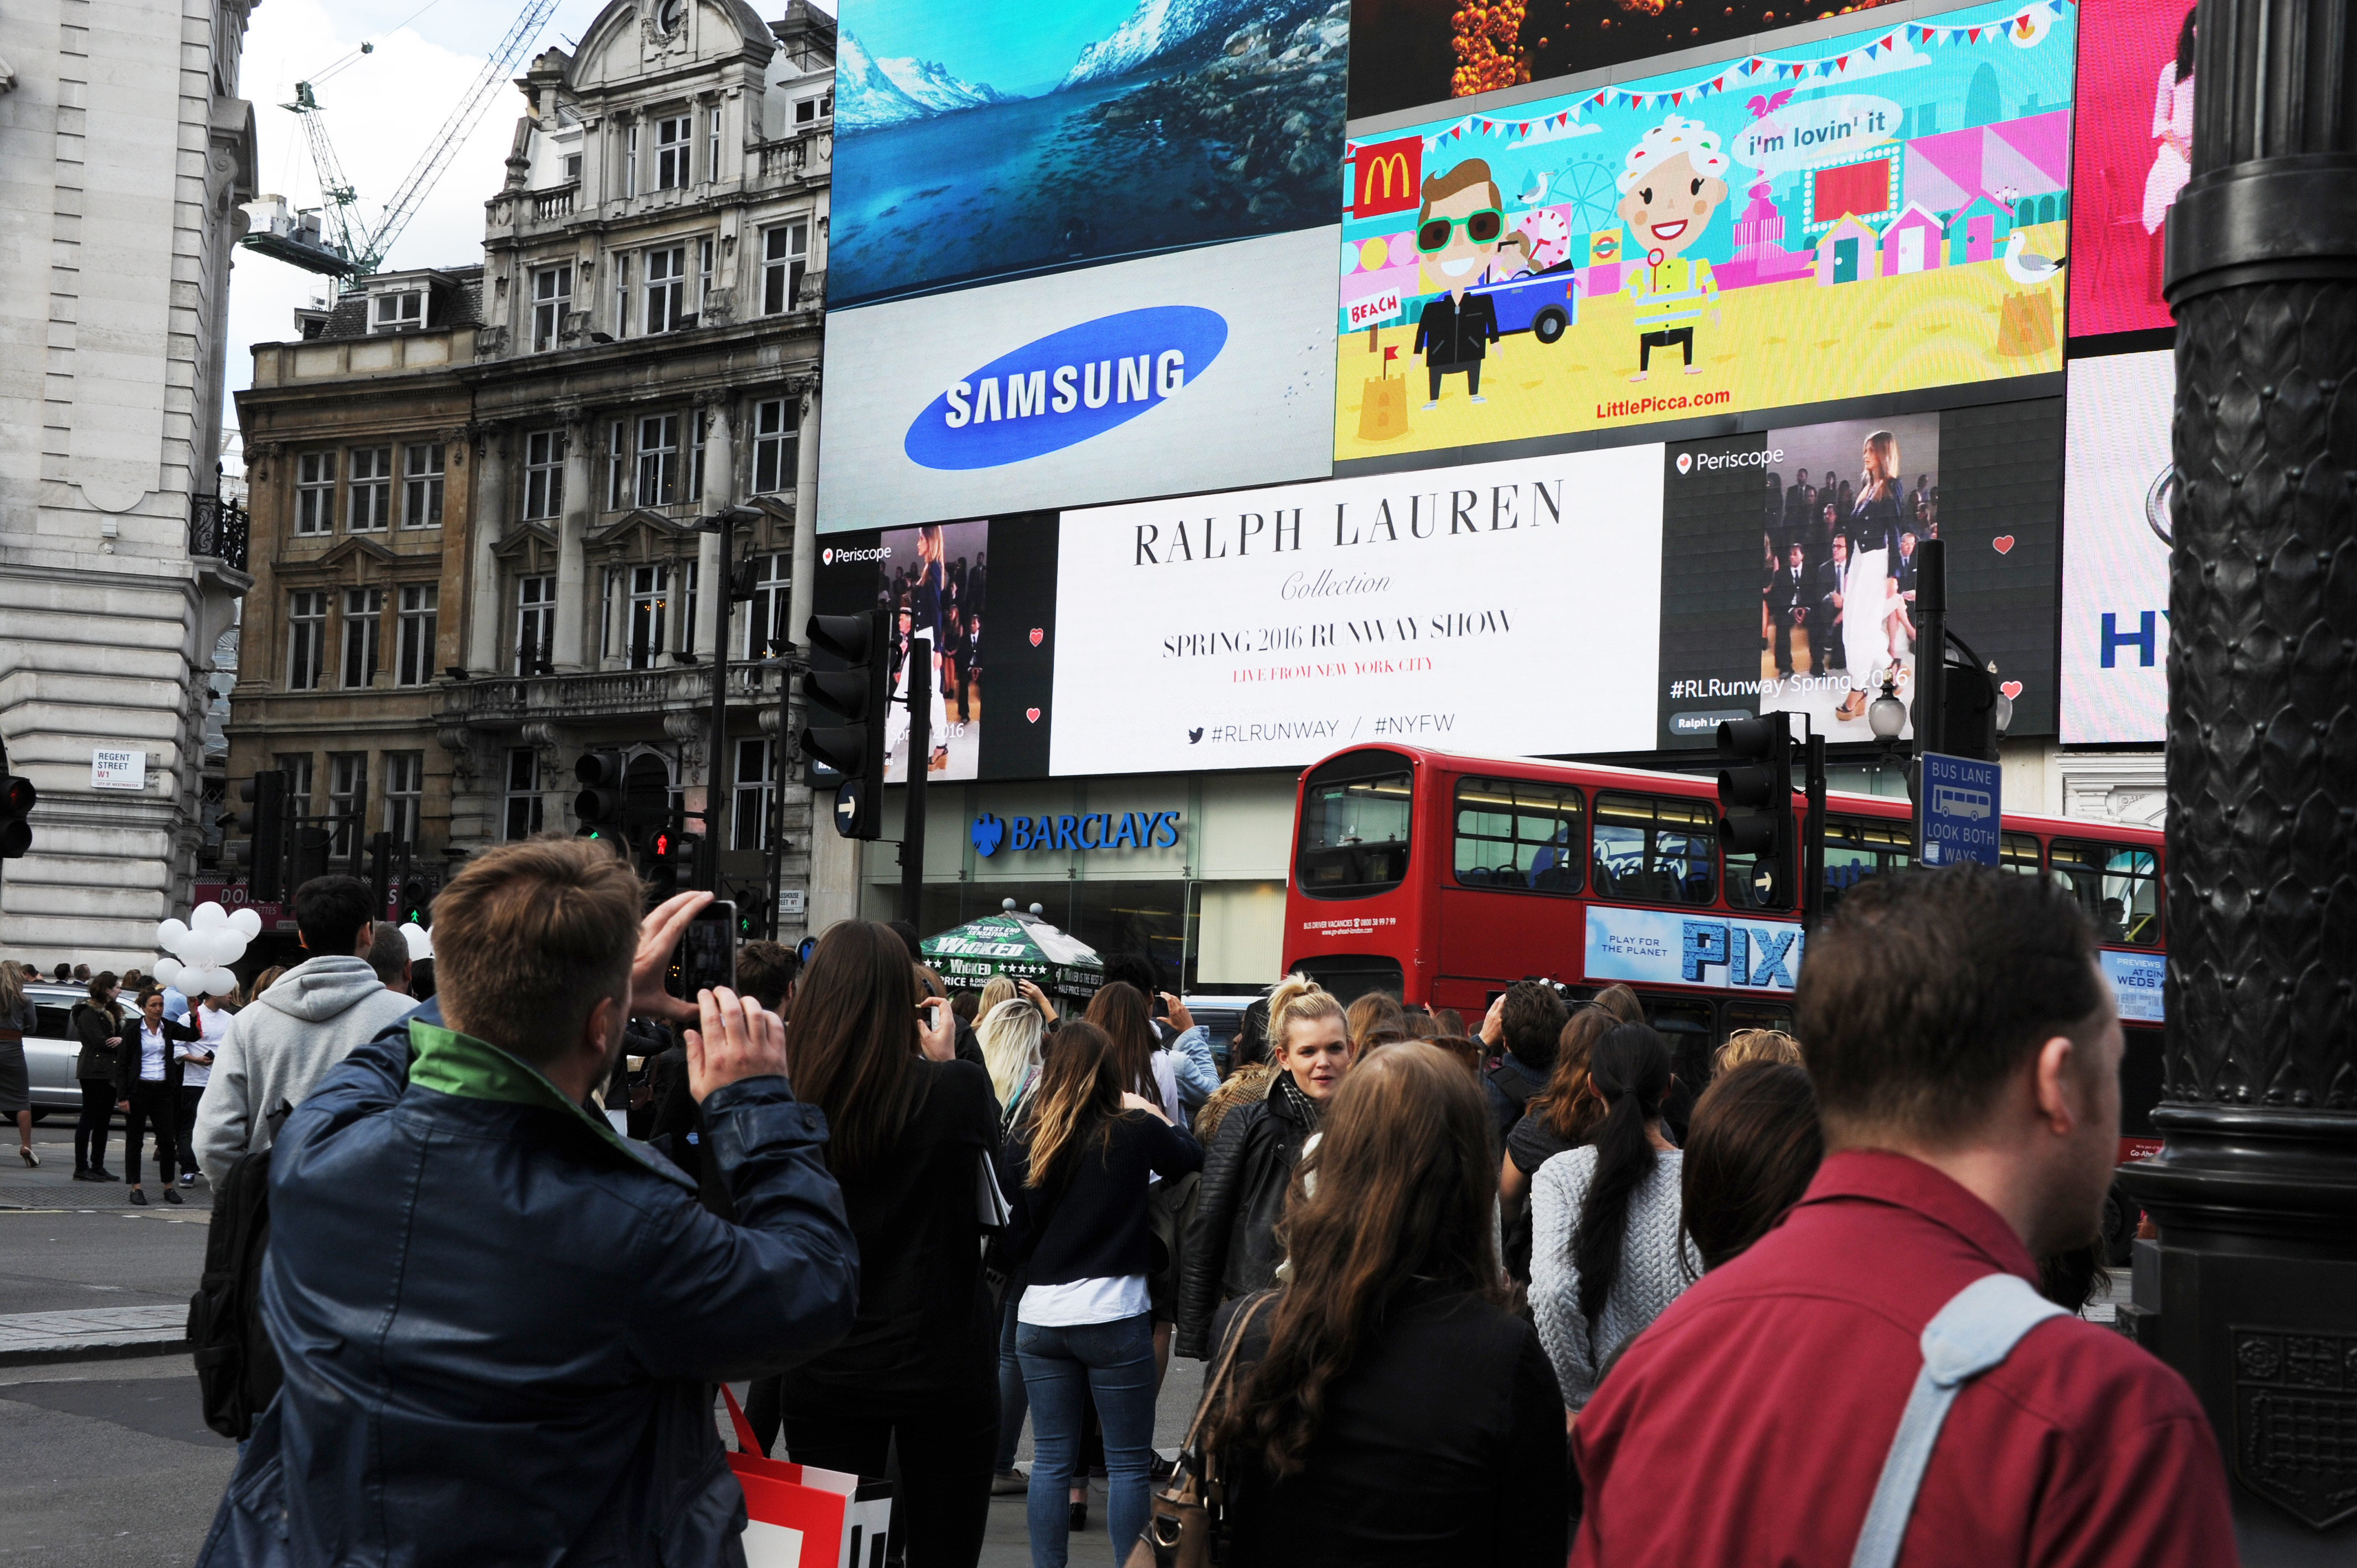 Ralph Lauren Show Streams London Piccadilly Circus